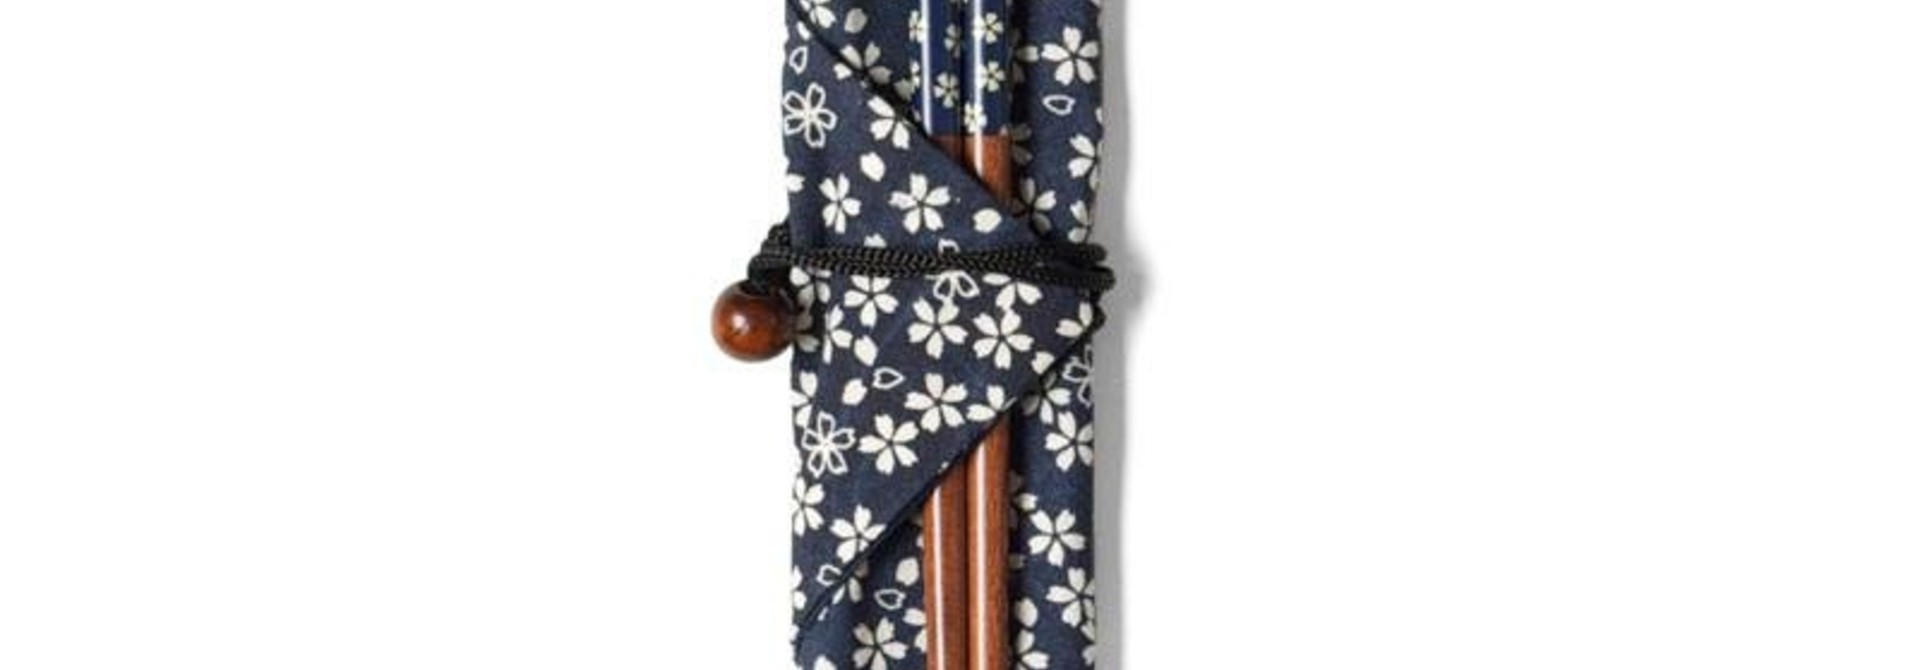 Blue Blossoms Chopsticks With Carrying Case